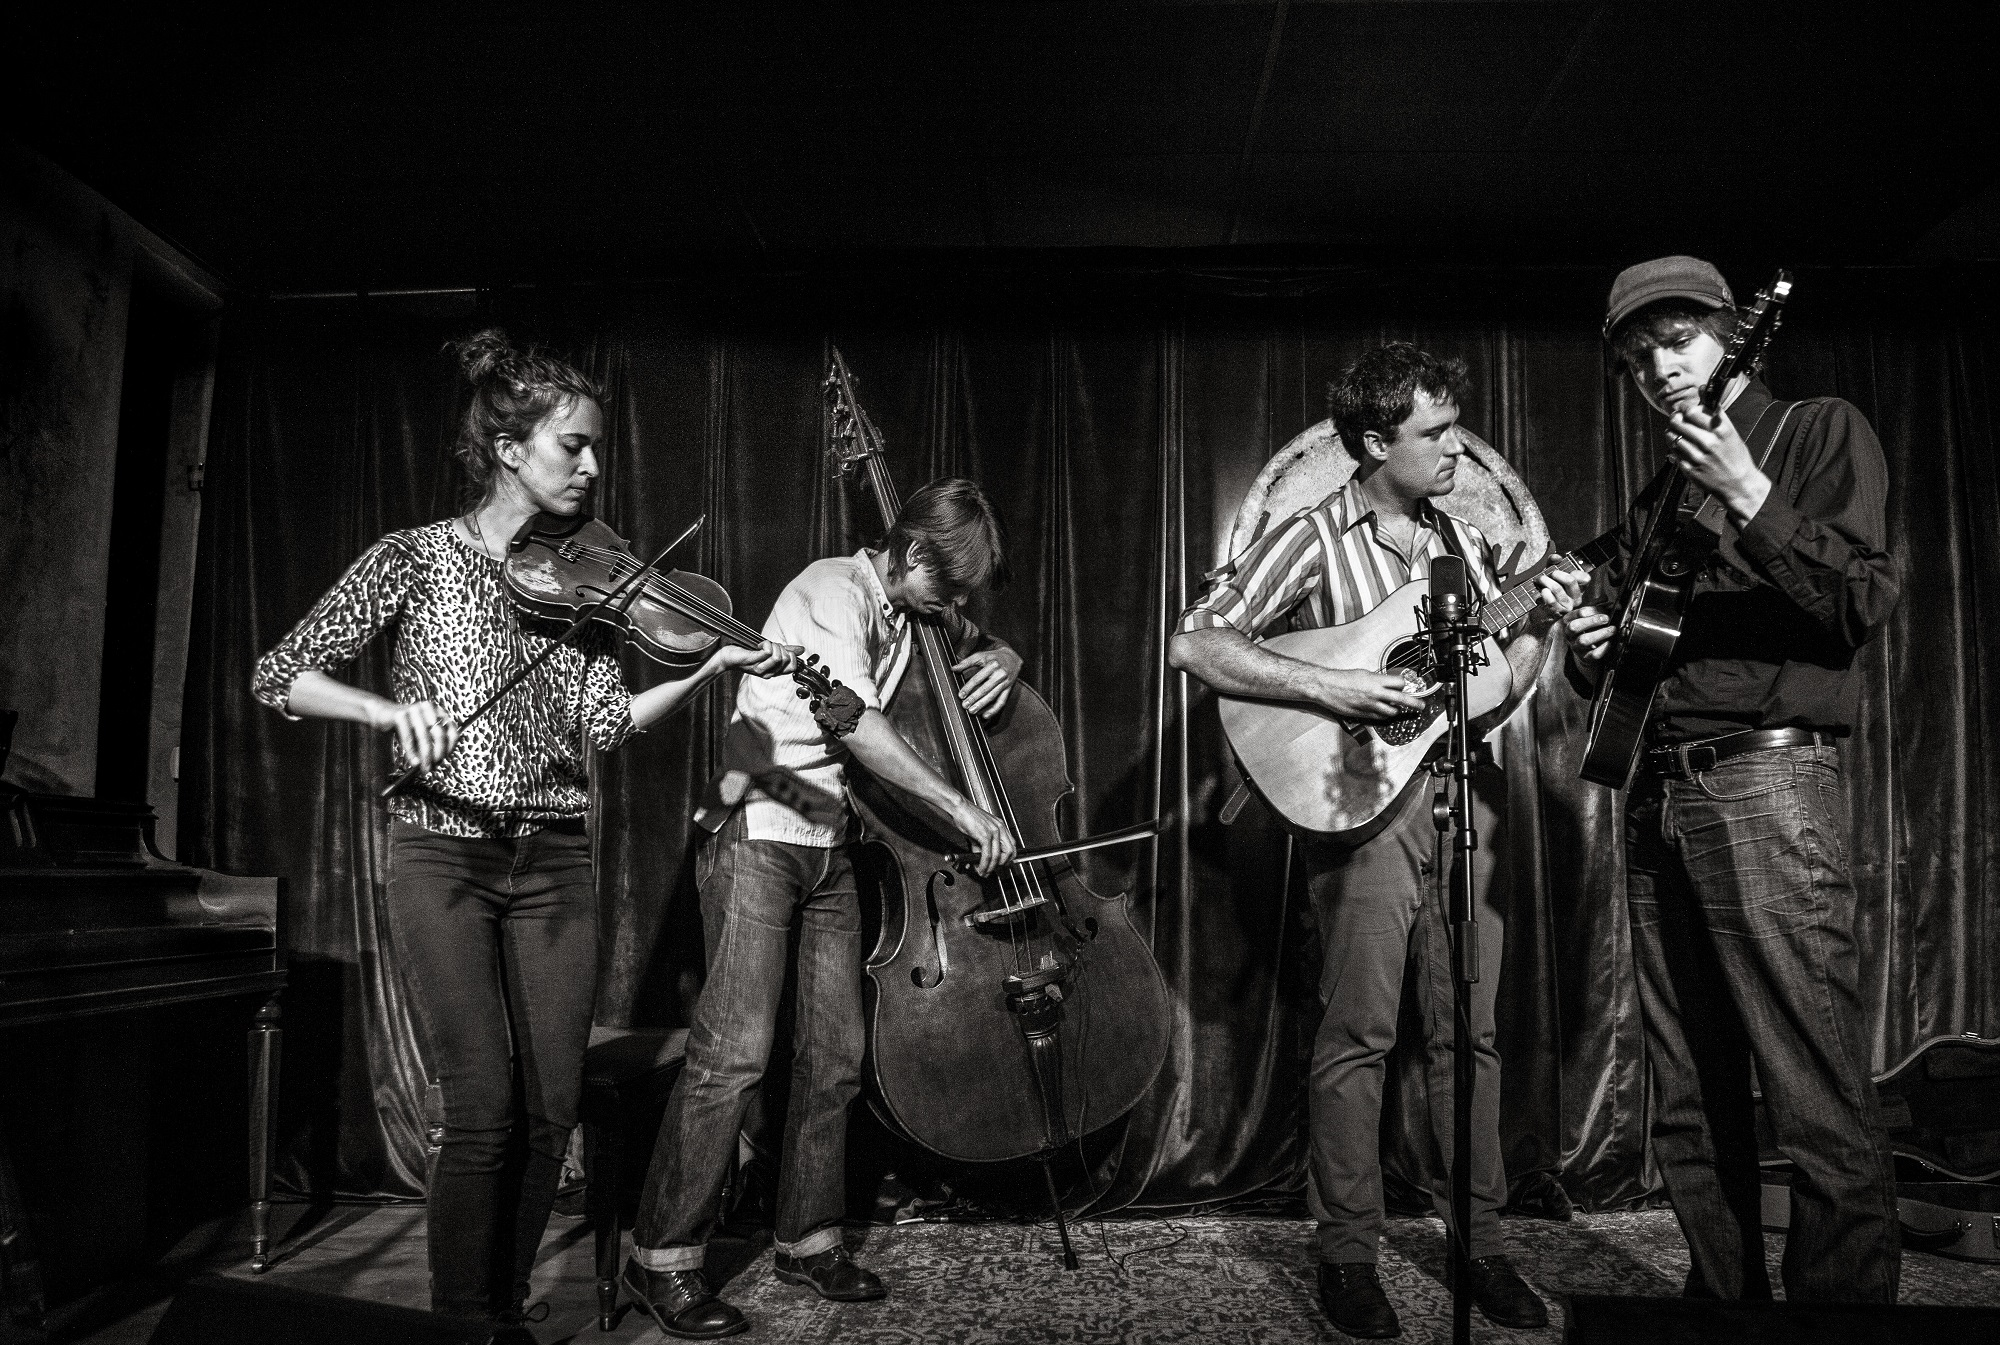 A Long, Musical Friendship: A Conversation With Hawktail